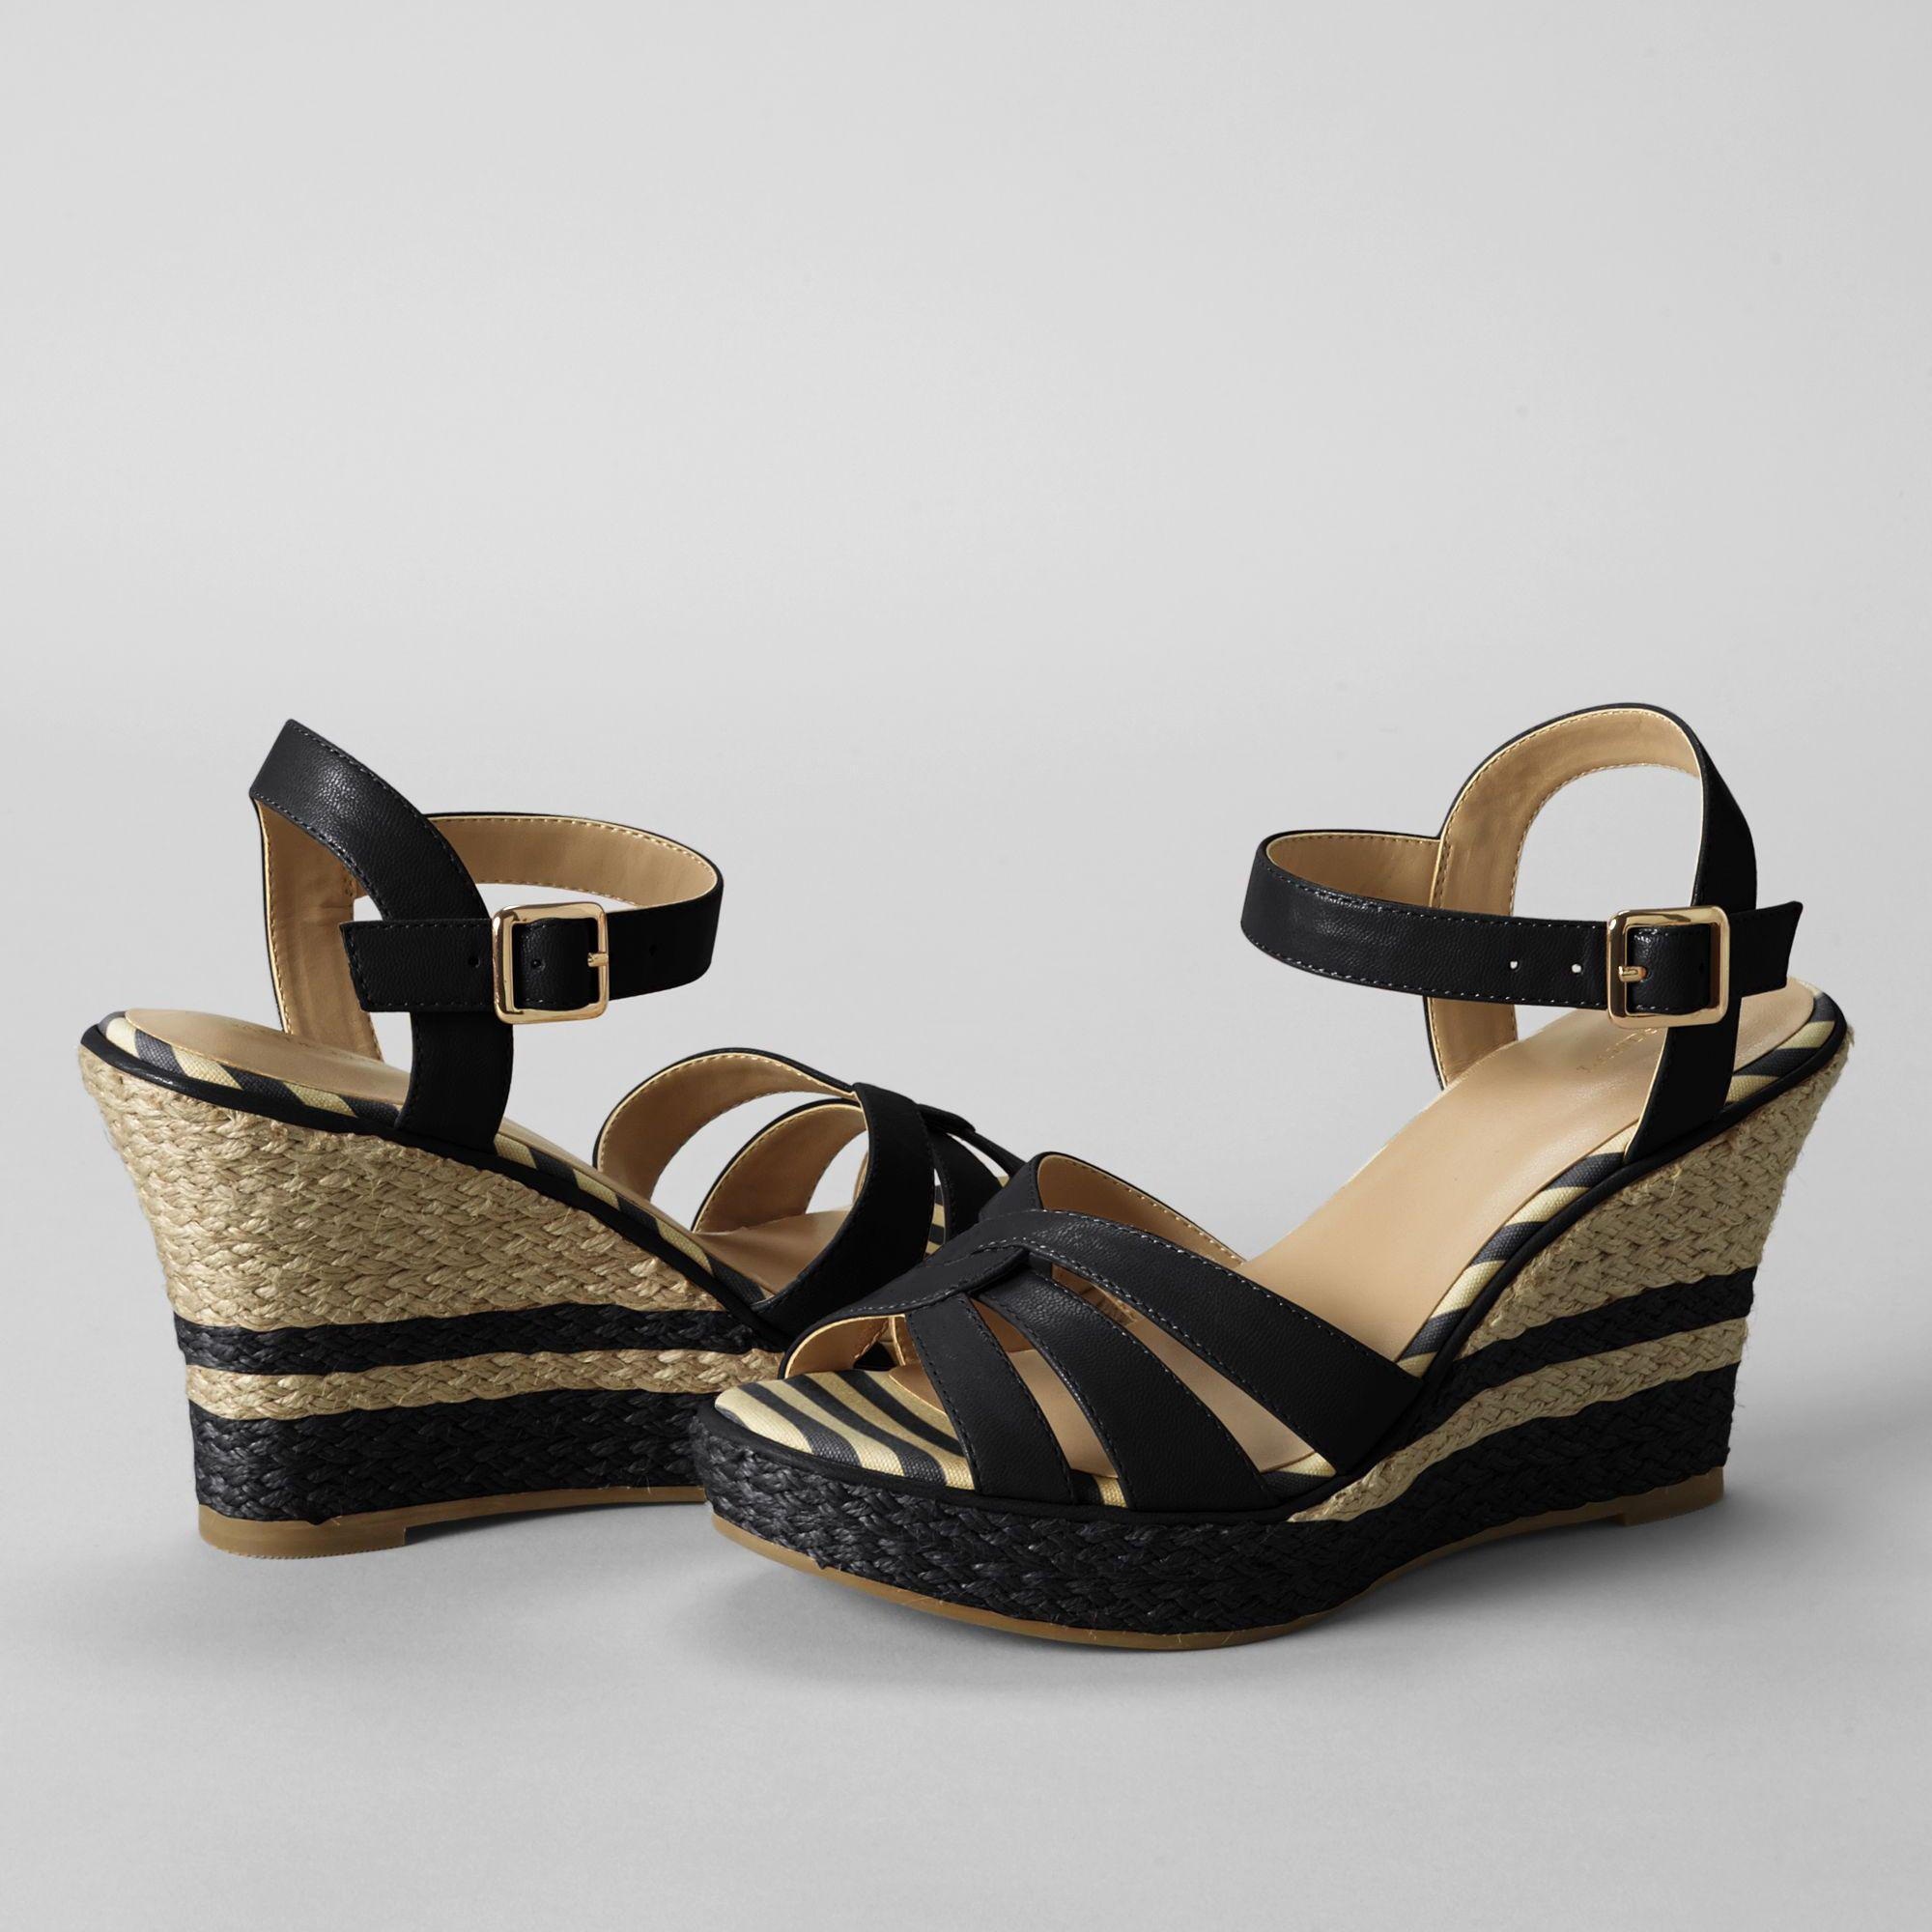 bf69fb2851191 Lands  End - Black Women s Simona Wedge Sandals - Lyst. View fullscreen